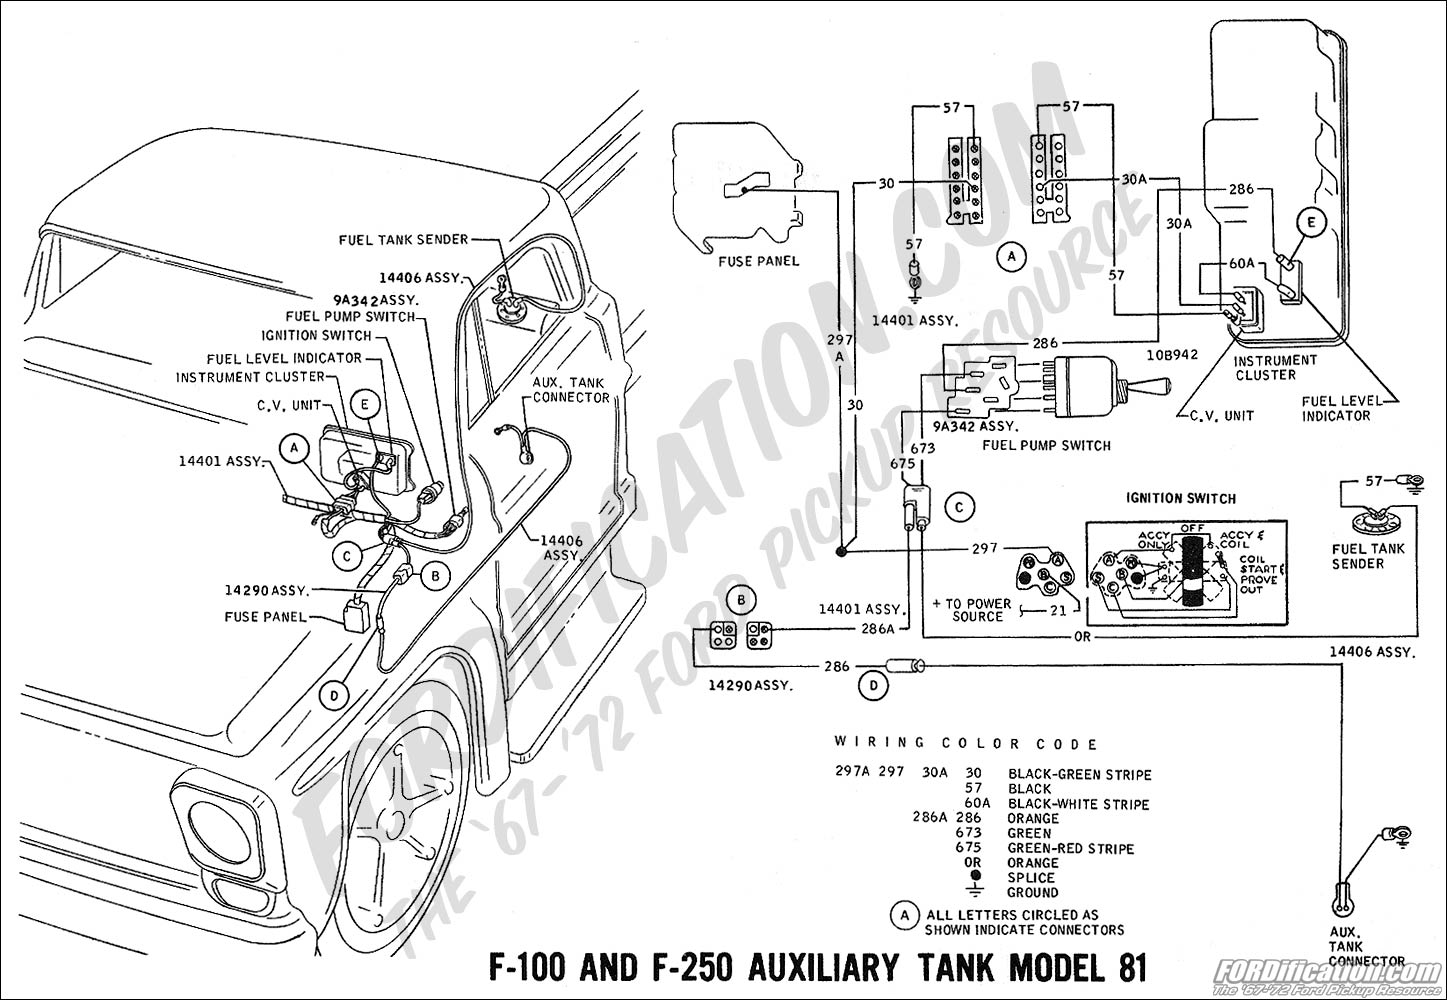 1979 F250 Fuse Box - Wiring Data Diagram  F Washer Pump Wiring Diagram on f500 wiring diagram, ford f 350 engine diagram, yukon wiring diagram, armada wiring diagram, ford wiring diagram, fairmont wiring diagram, aspire wiring diagram, van wiring diagram, model wiring diagram, f150 wiring diagram, 2011 f250 wiring diagram, sport trac wiring diagram, c-max wiring diagram, g6 wiring diagram, fusion wiring diagram, 4x4 wiring diagram, f450 wiring diagram, f550 wiring diagram, frontier wiring diagram, pinto wiring diagram,